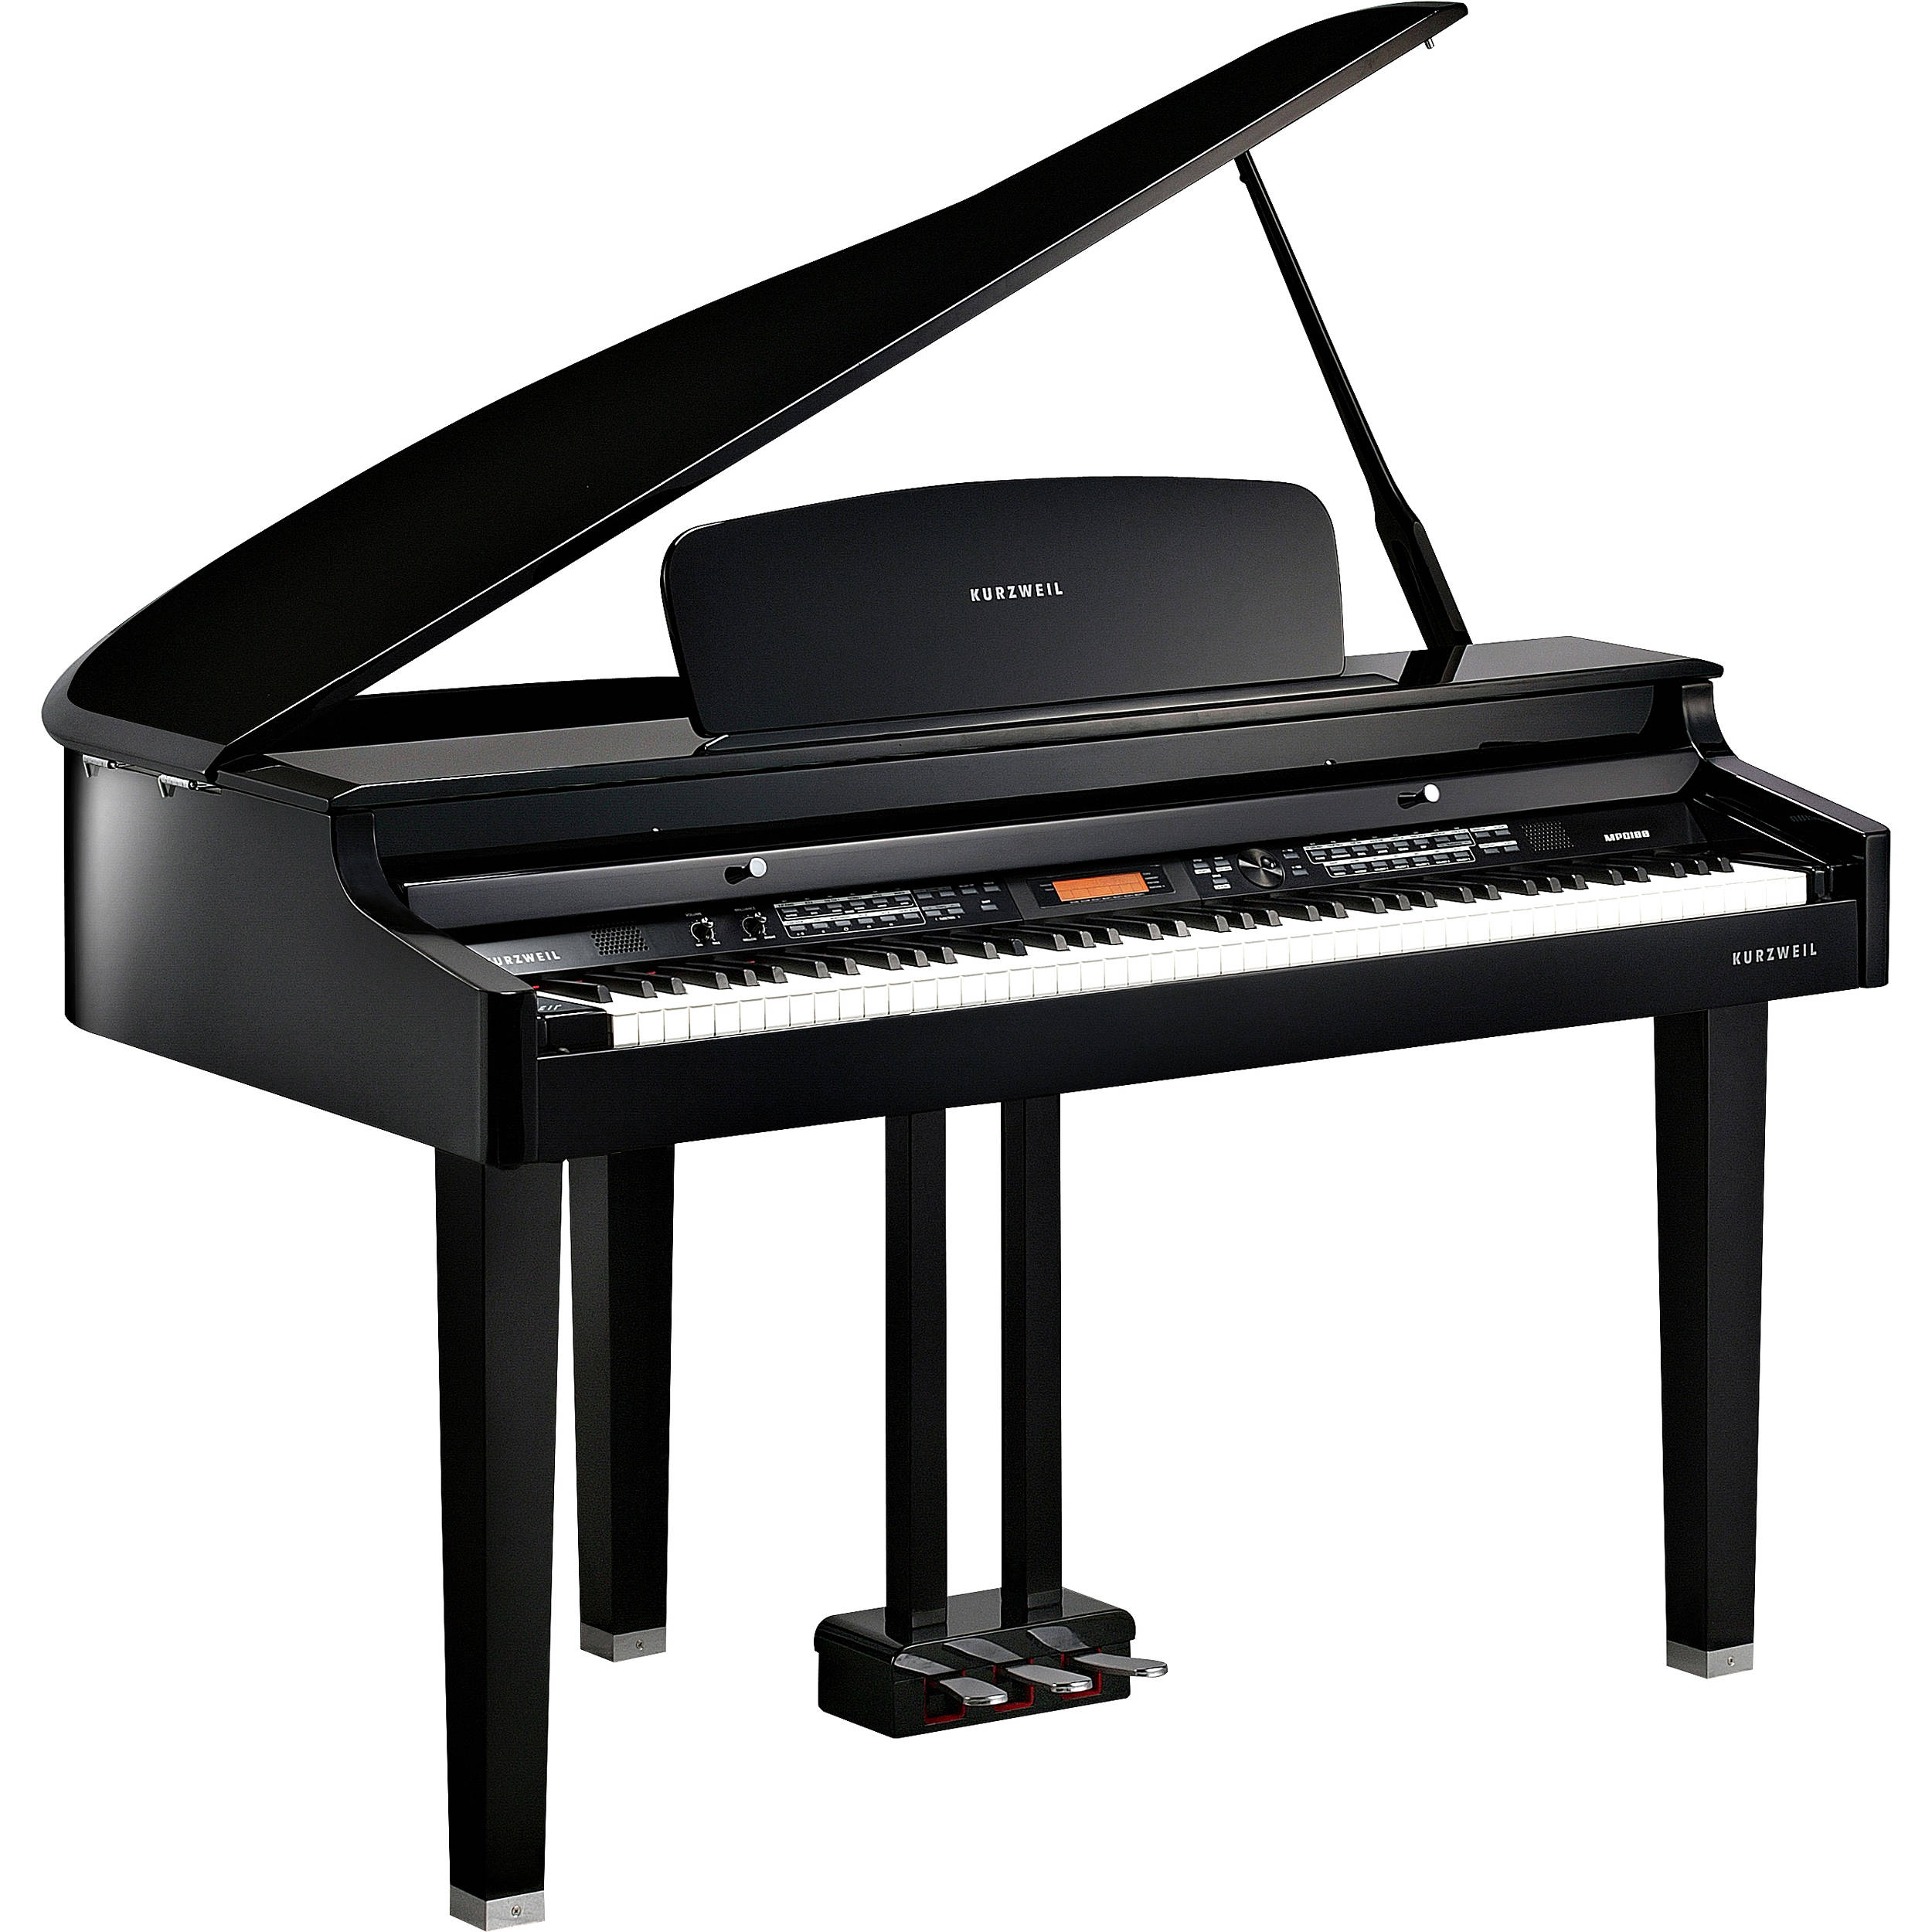 Kurzweil mpg100 digital mini size baby grand piano mpg100 Size of baby grand piano